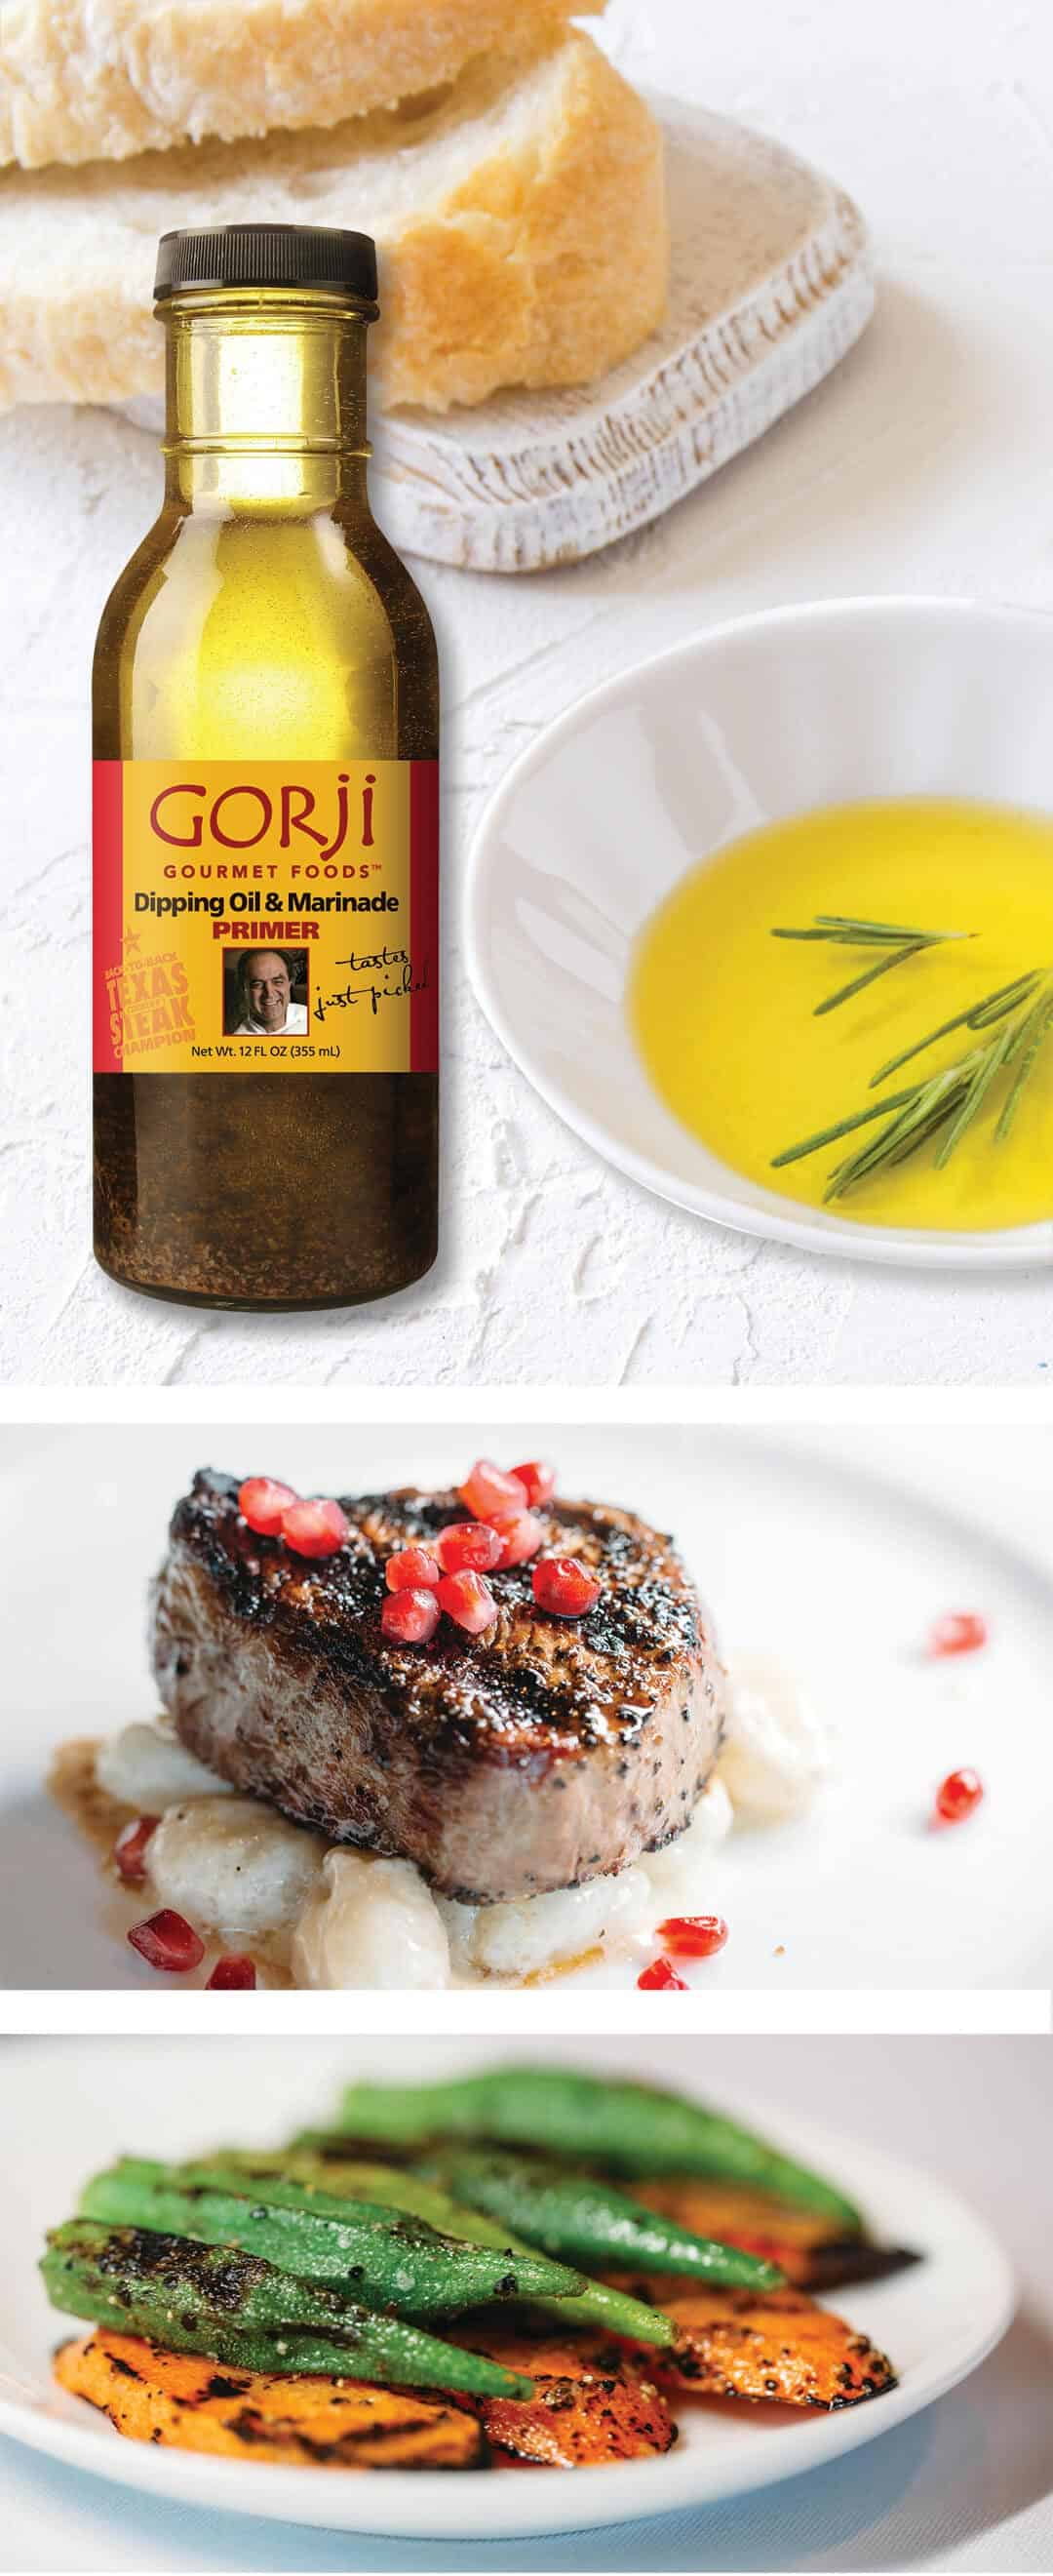 dipping-oil-marinade-cooking-olive-oil-bread-dip-steak-vegetables